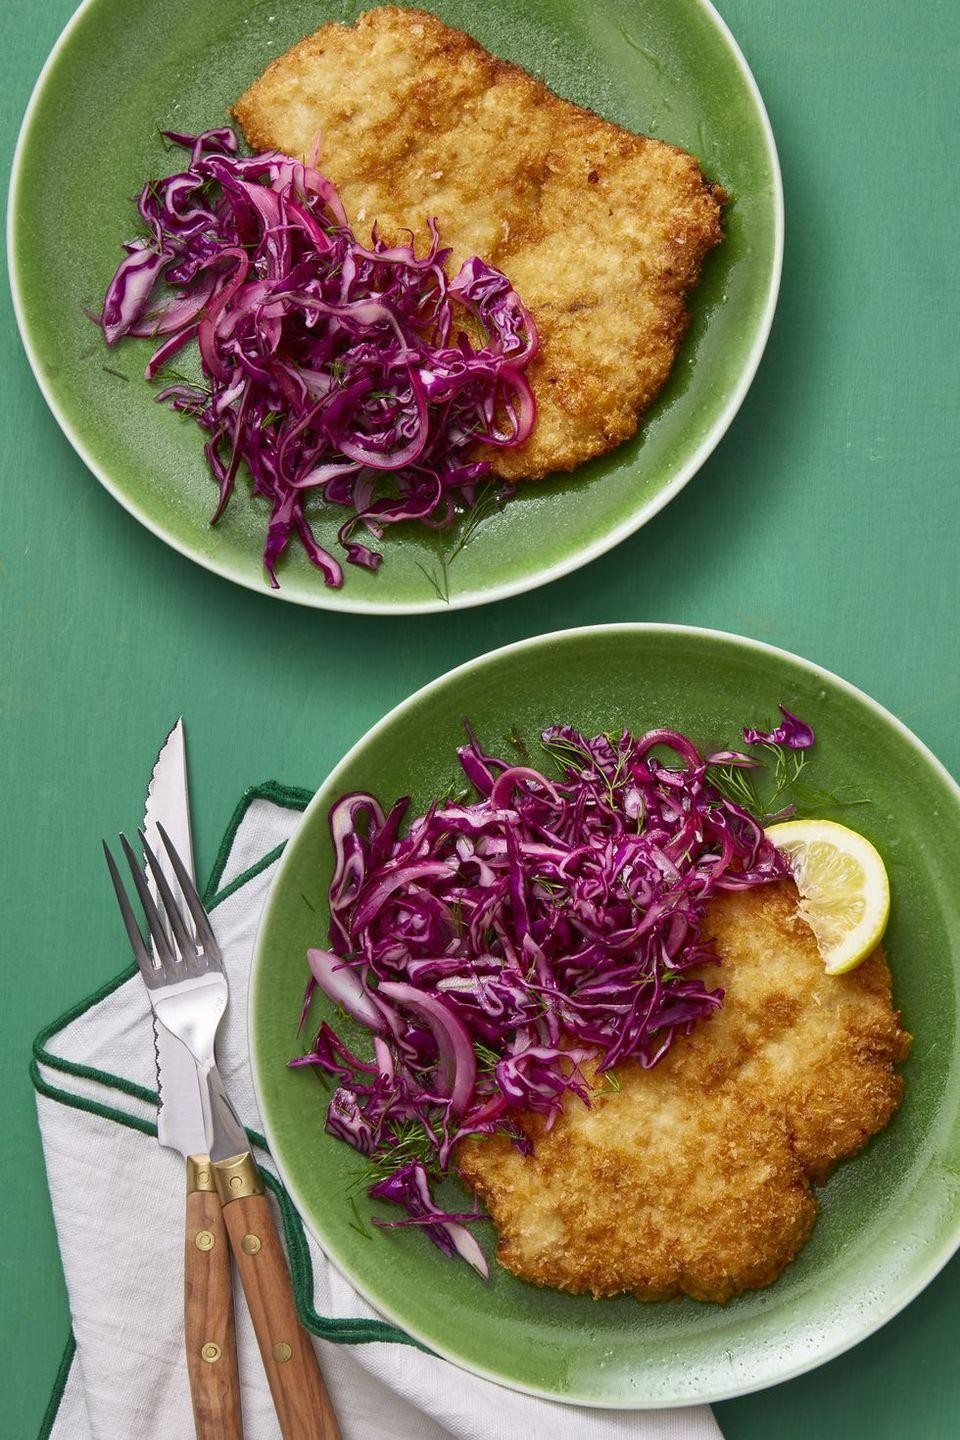 """<p>Enjoy with cabbage Caraway salad next to a crisp pork schnitzel, or on its own. </p><p><em><a href=""""https://www.womansday.com/food-recipes/food-drinks/recipes/a60710/pork-schnitzel-with-red-cabbage-and-caraway-salad-recipe/"""" rel=""""nofollow noopener"""" target=""""_blank"""" data-ylk=""""slk:Get the recipe from Woman's Day"""" class=""""link rapid-noclick-resp"""">Get the recipe from Woman's Day</a></em><em><a href=""""https://www.delish.com/cooking/recipe-ideas/a20958094/low-carb-cabbage-enchilada-recipe/"""" rel=""""nofollow noopener"""" target=""""_blank"""" data-ylk=""""slk:»"""" class=""""link rapid-noclick-resp""""> »</a></em></p>"""